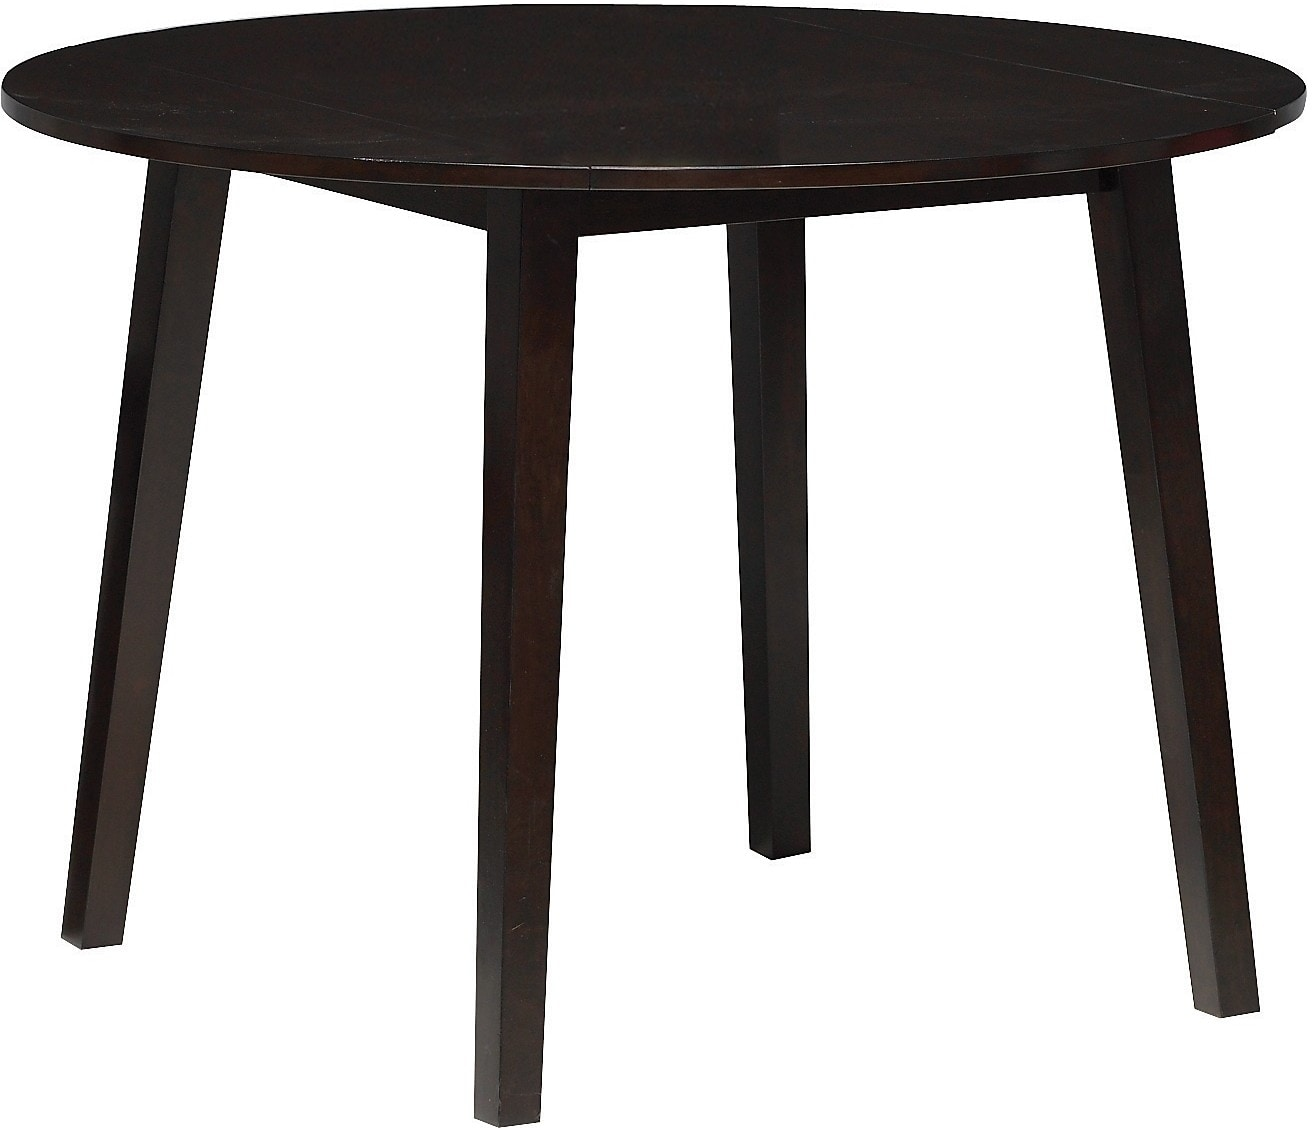 adara round drop leaf dining table the brick. Black Bedroom Furniture Sets. Home Design Ideas